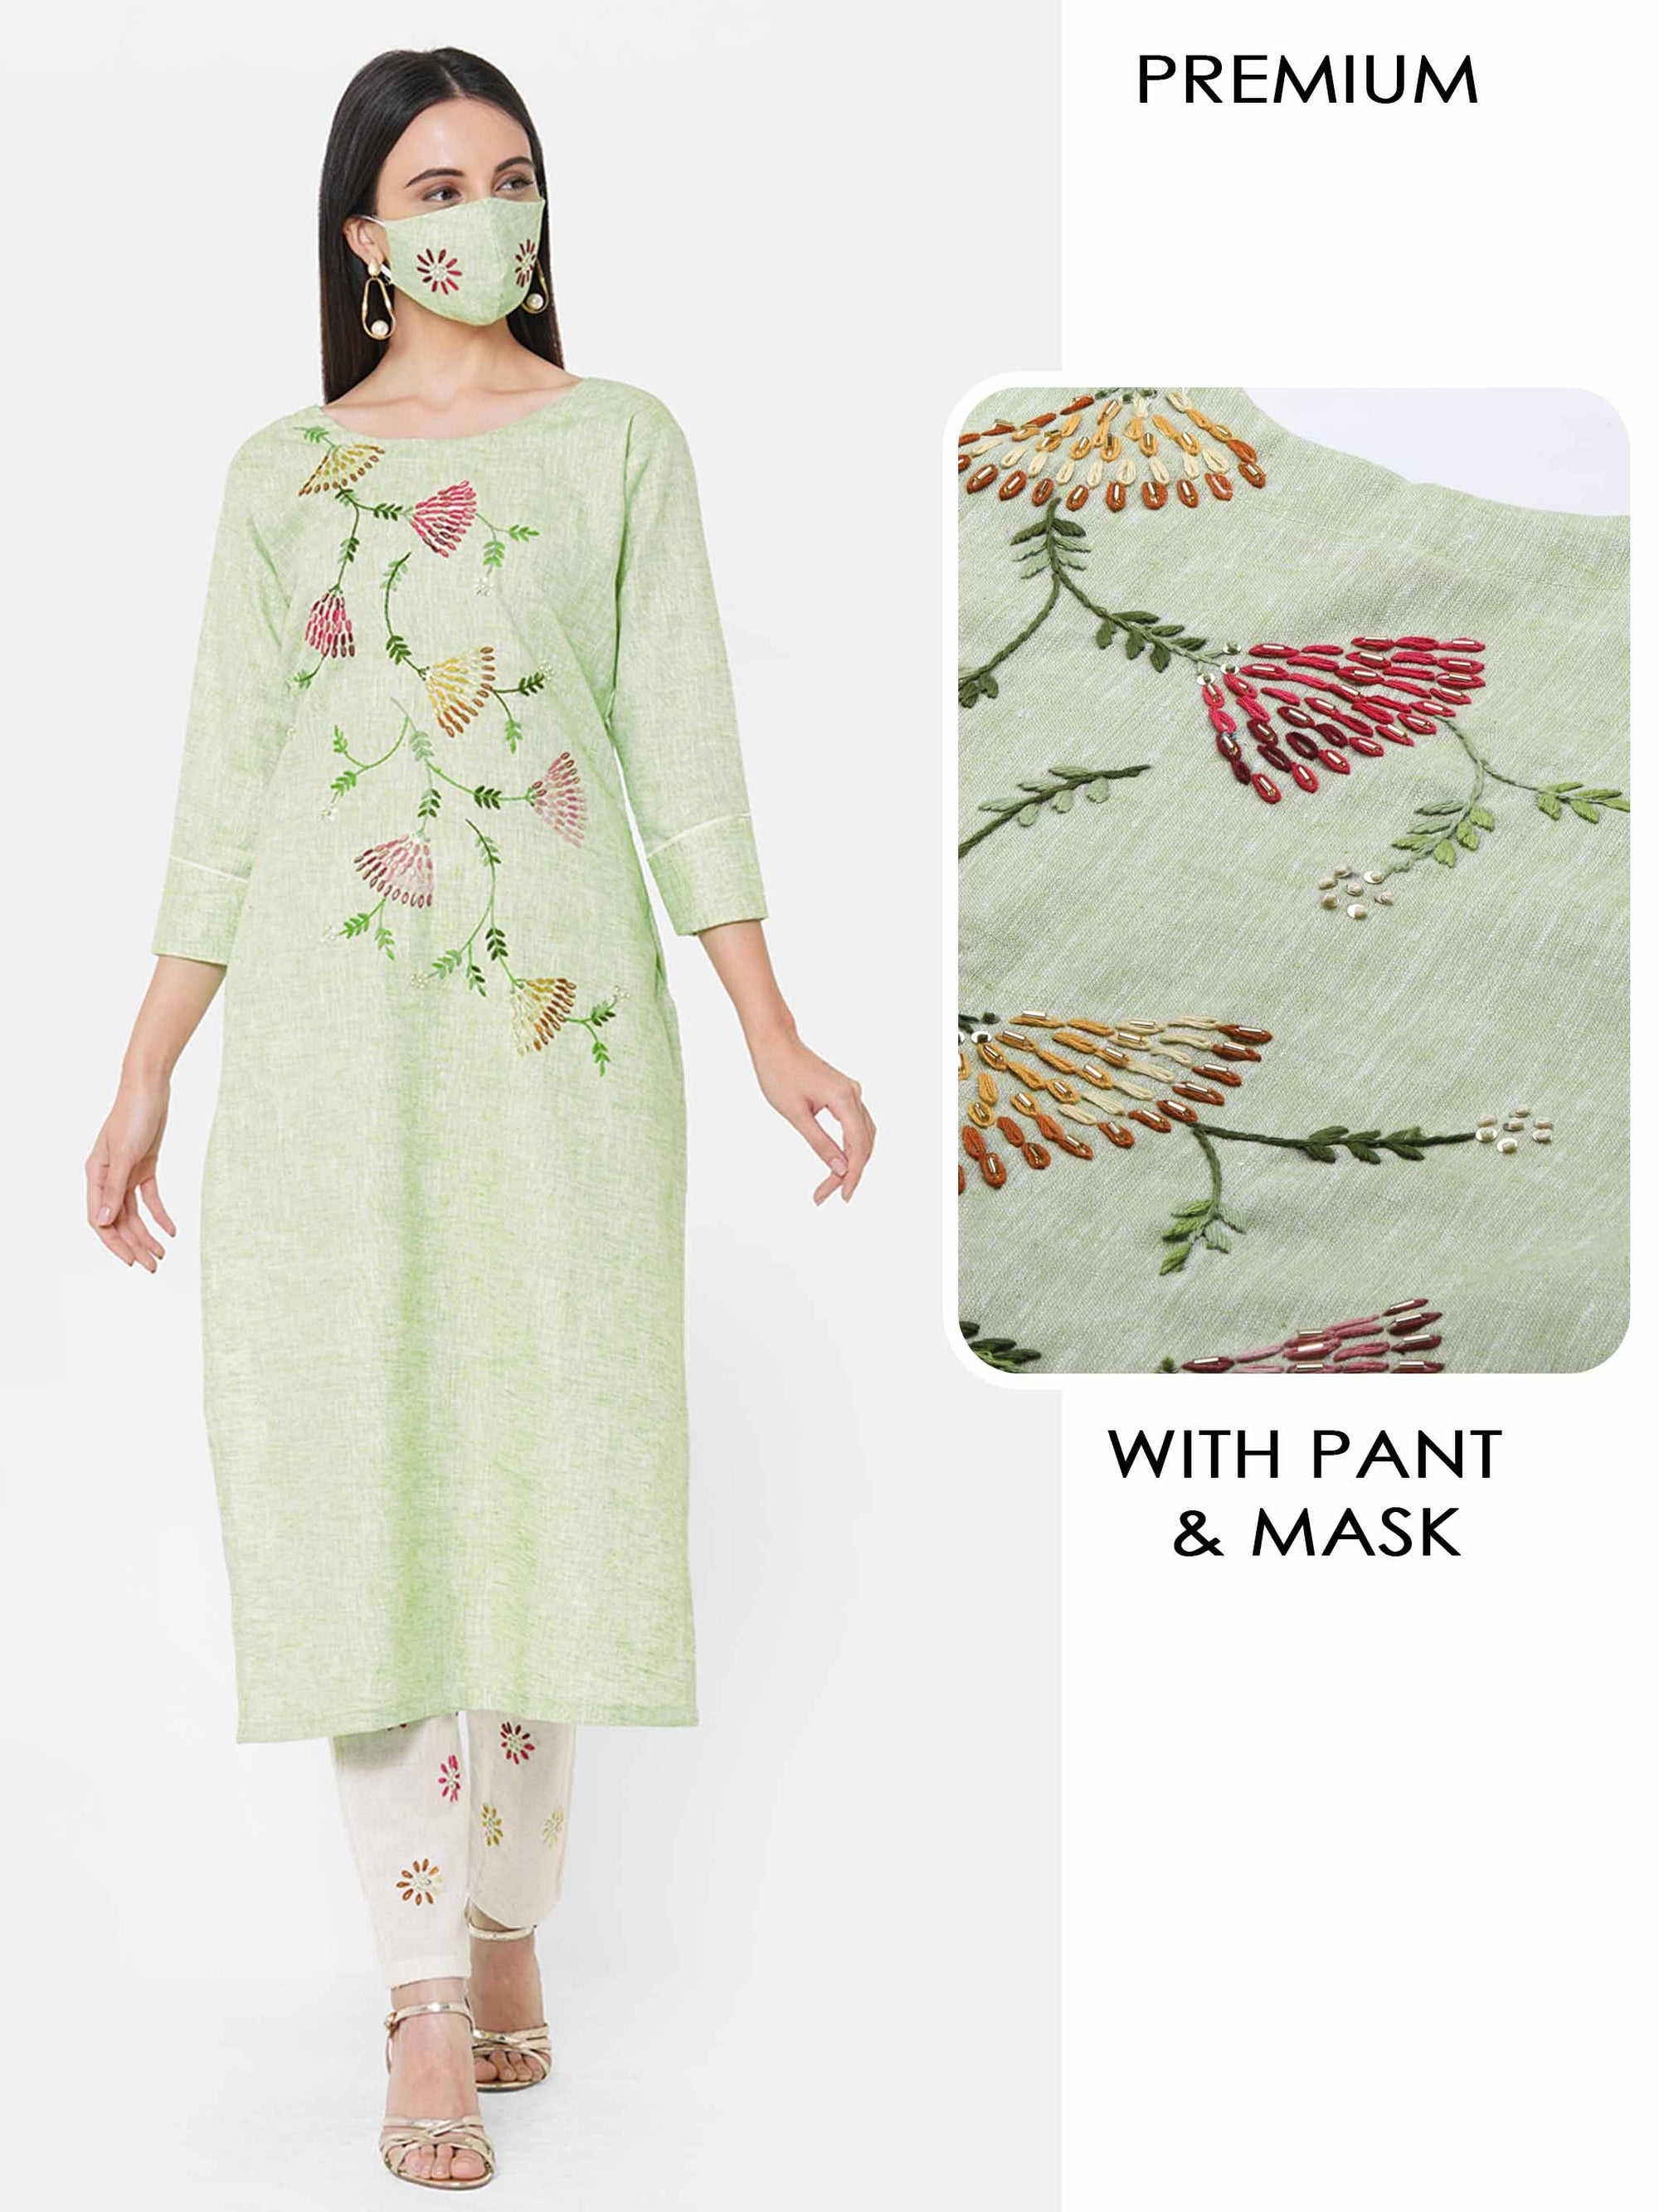 Floral Embroidered Kurta with Floral Embroidered Pant & 2-Ply Mask - Pastel Green